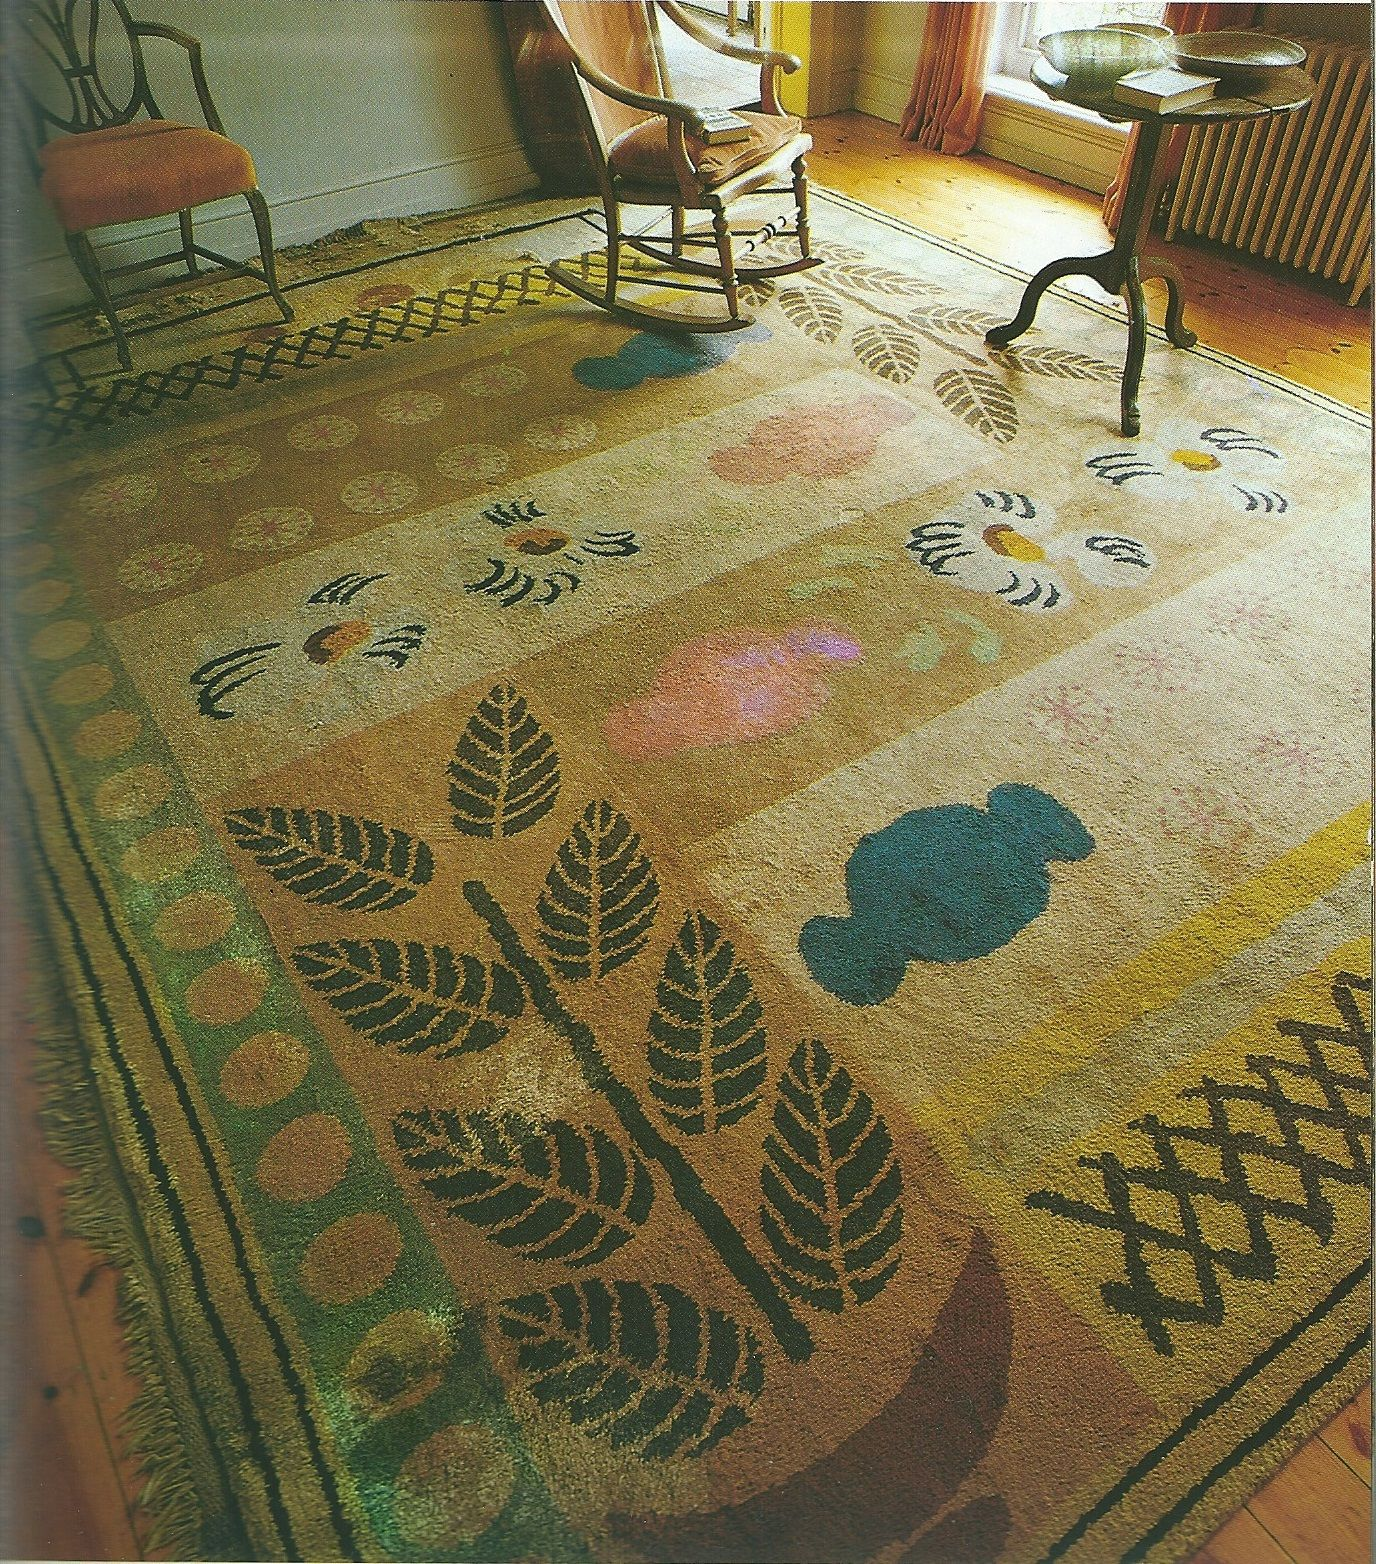 'Vases' Carpet, Designed By Duncan Grant For Virginia